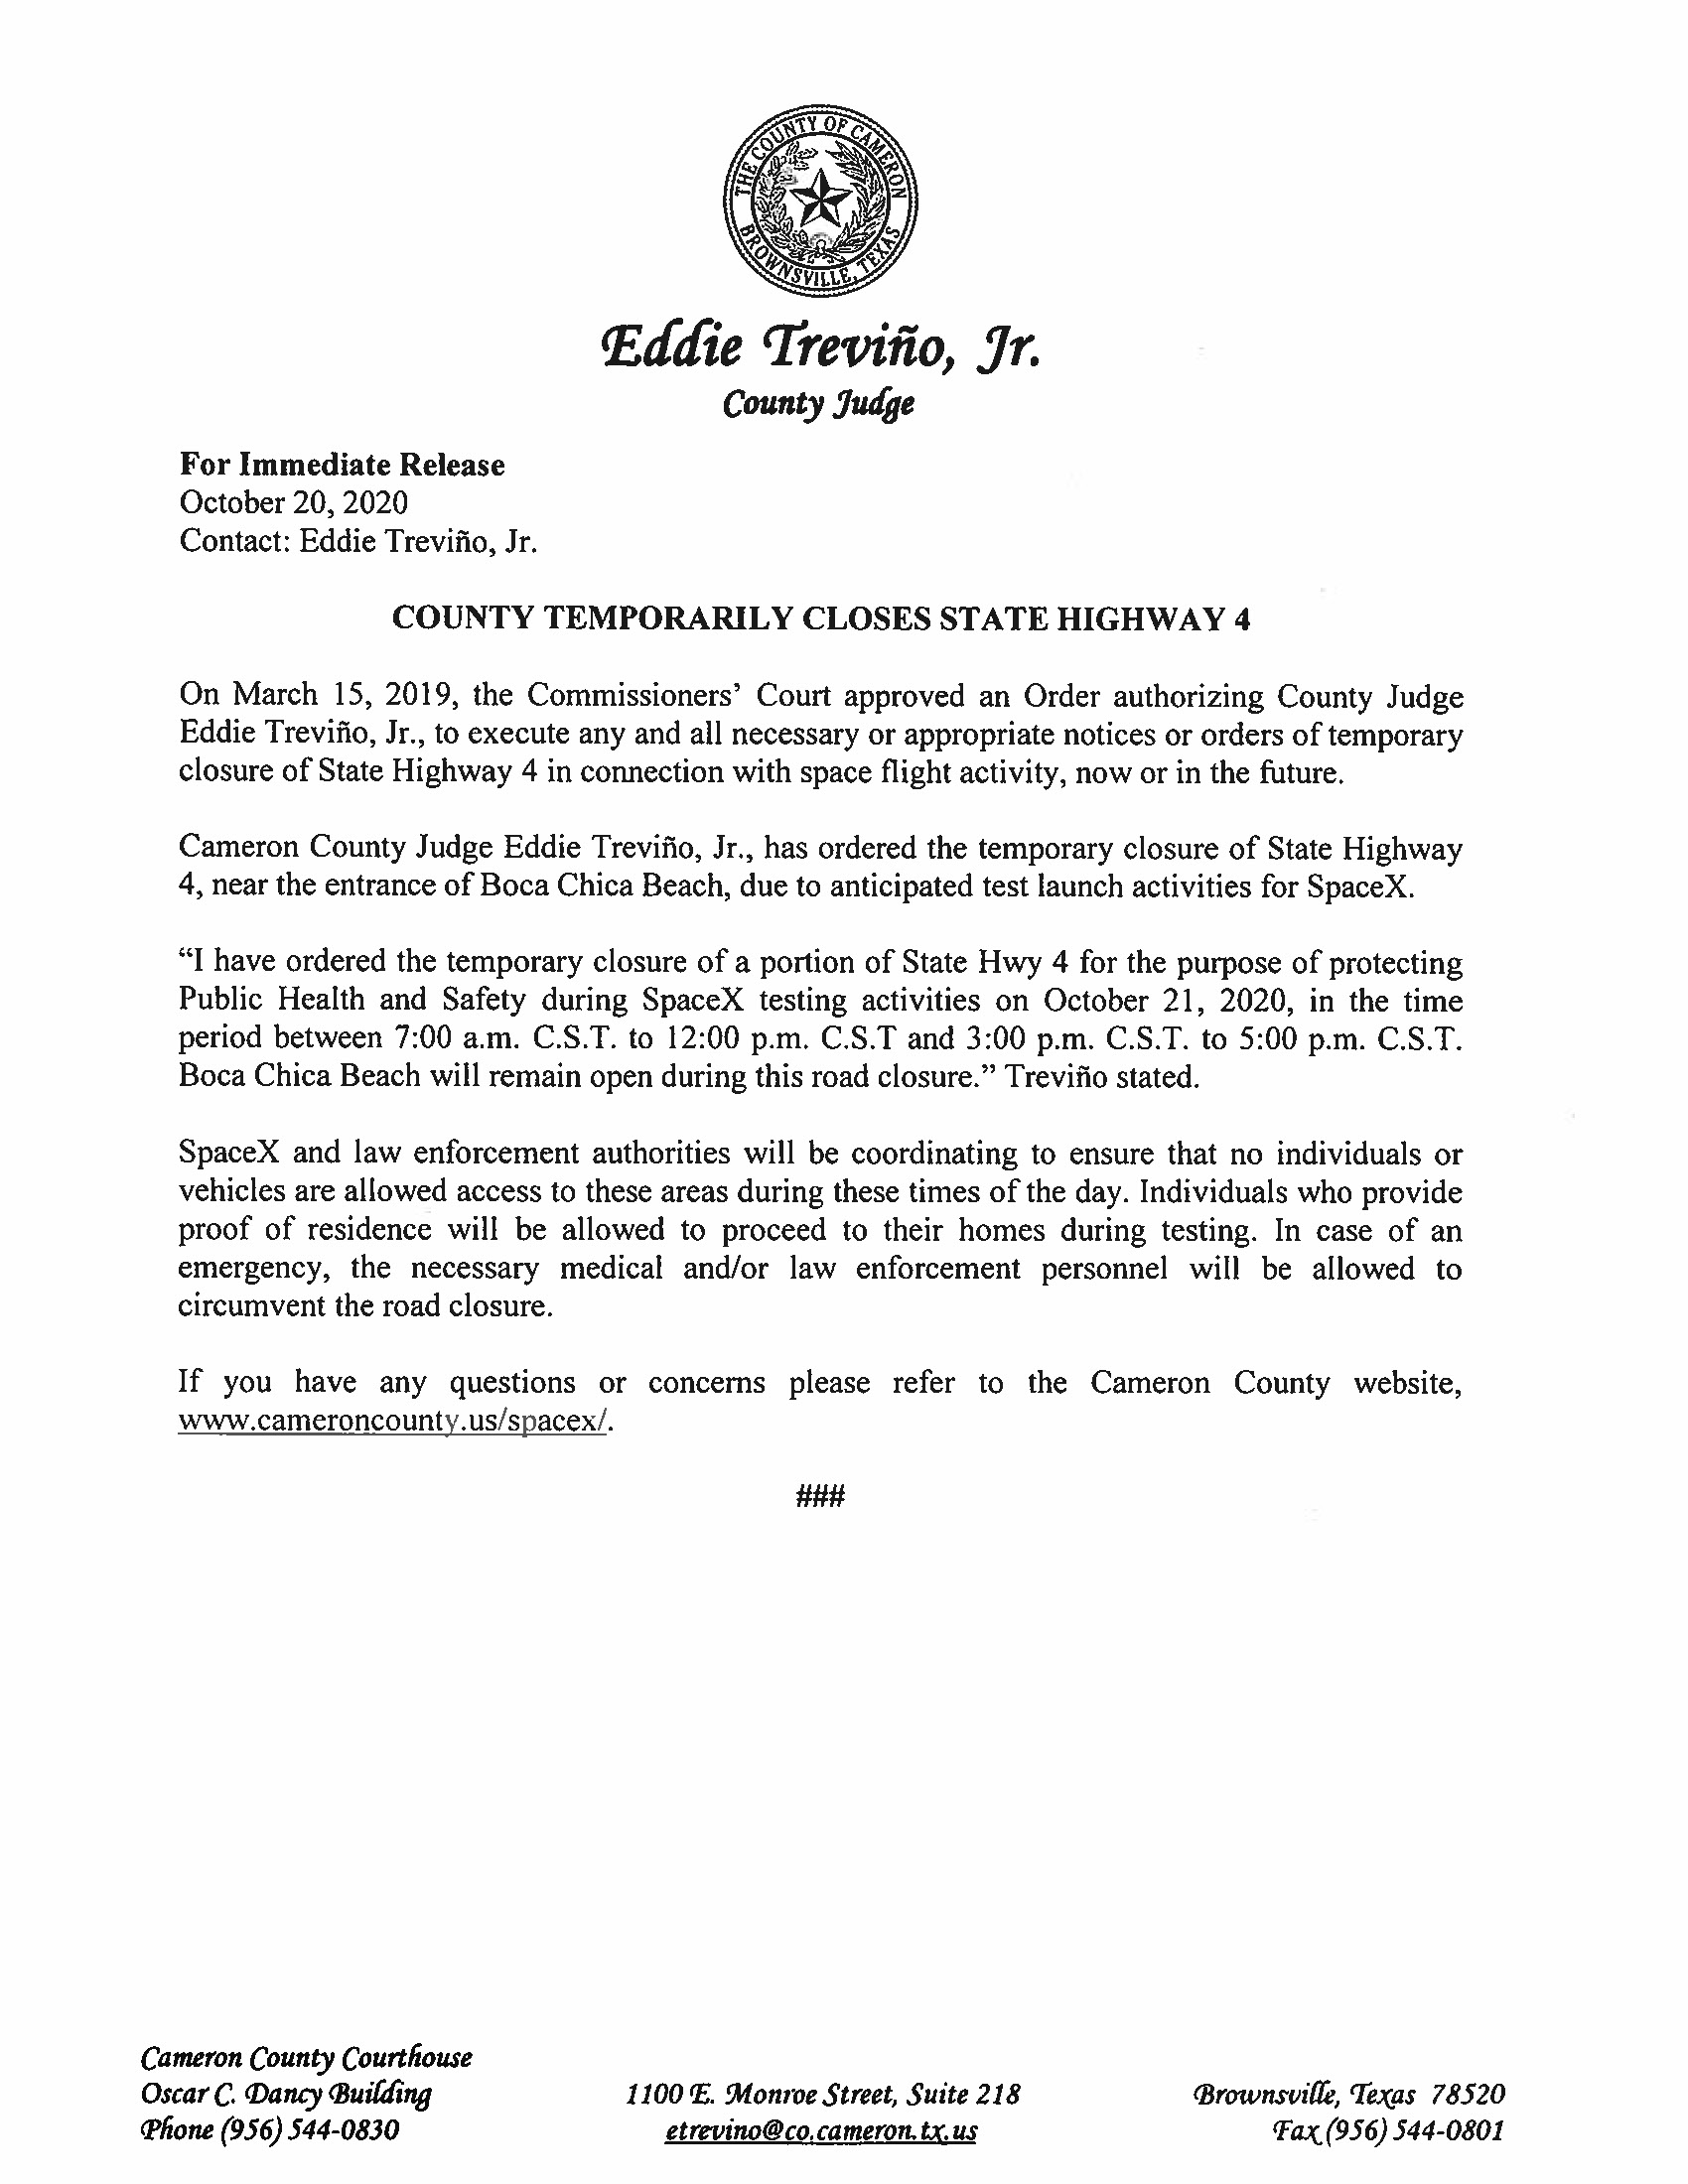 Press Release In English And Spanish.10.21.20 Page 1